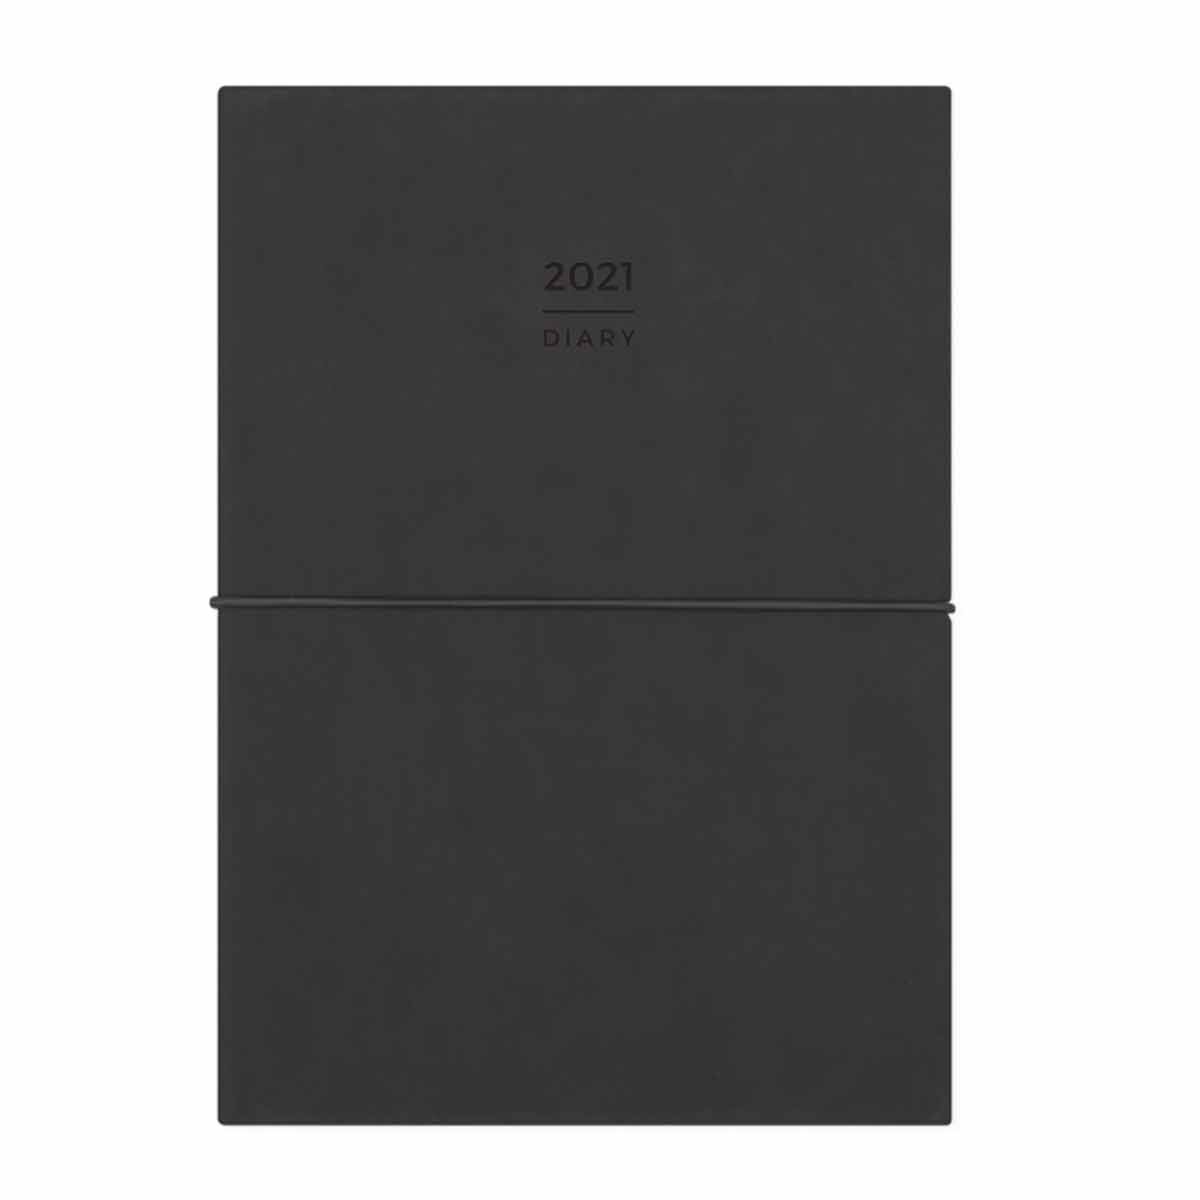 Orchard and Dunne Notebook Diary Week to View A6 2021 Black